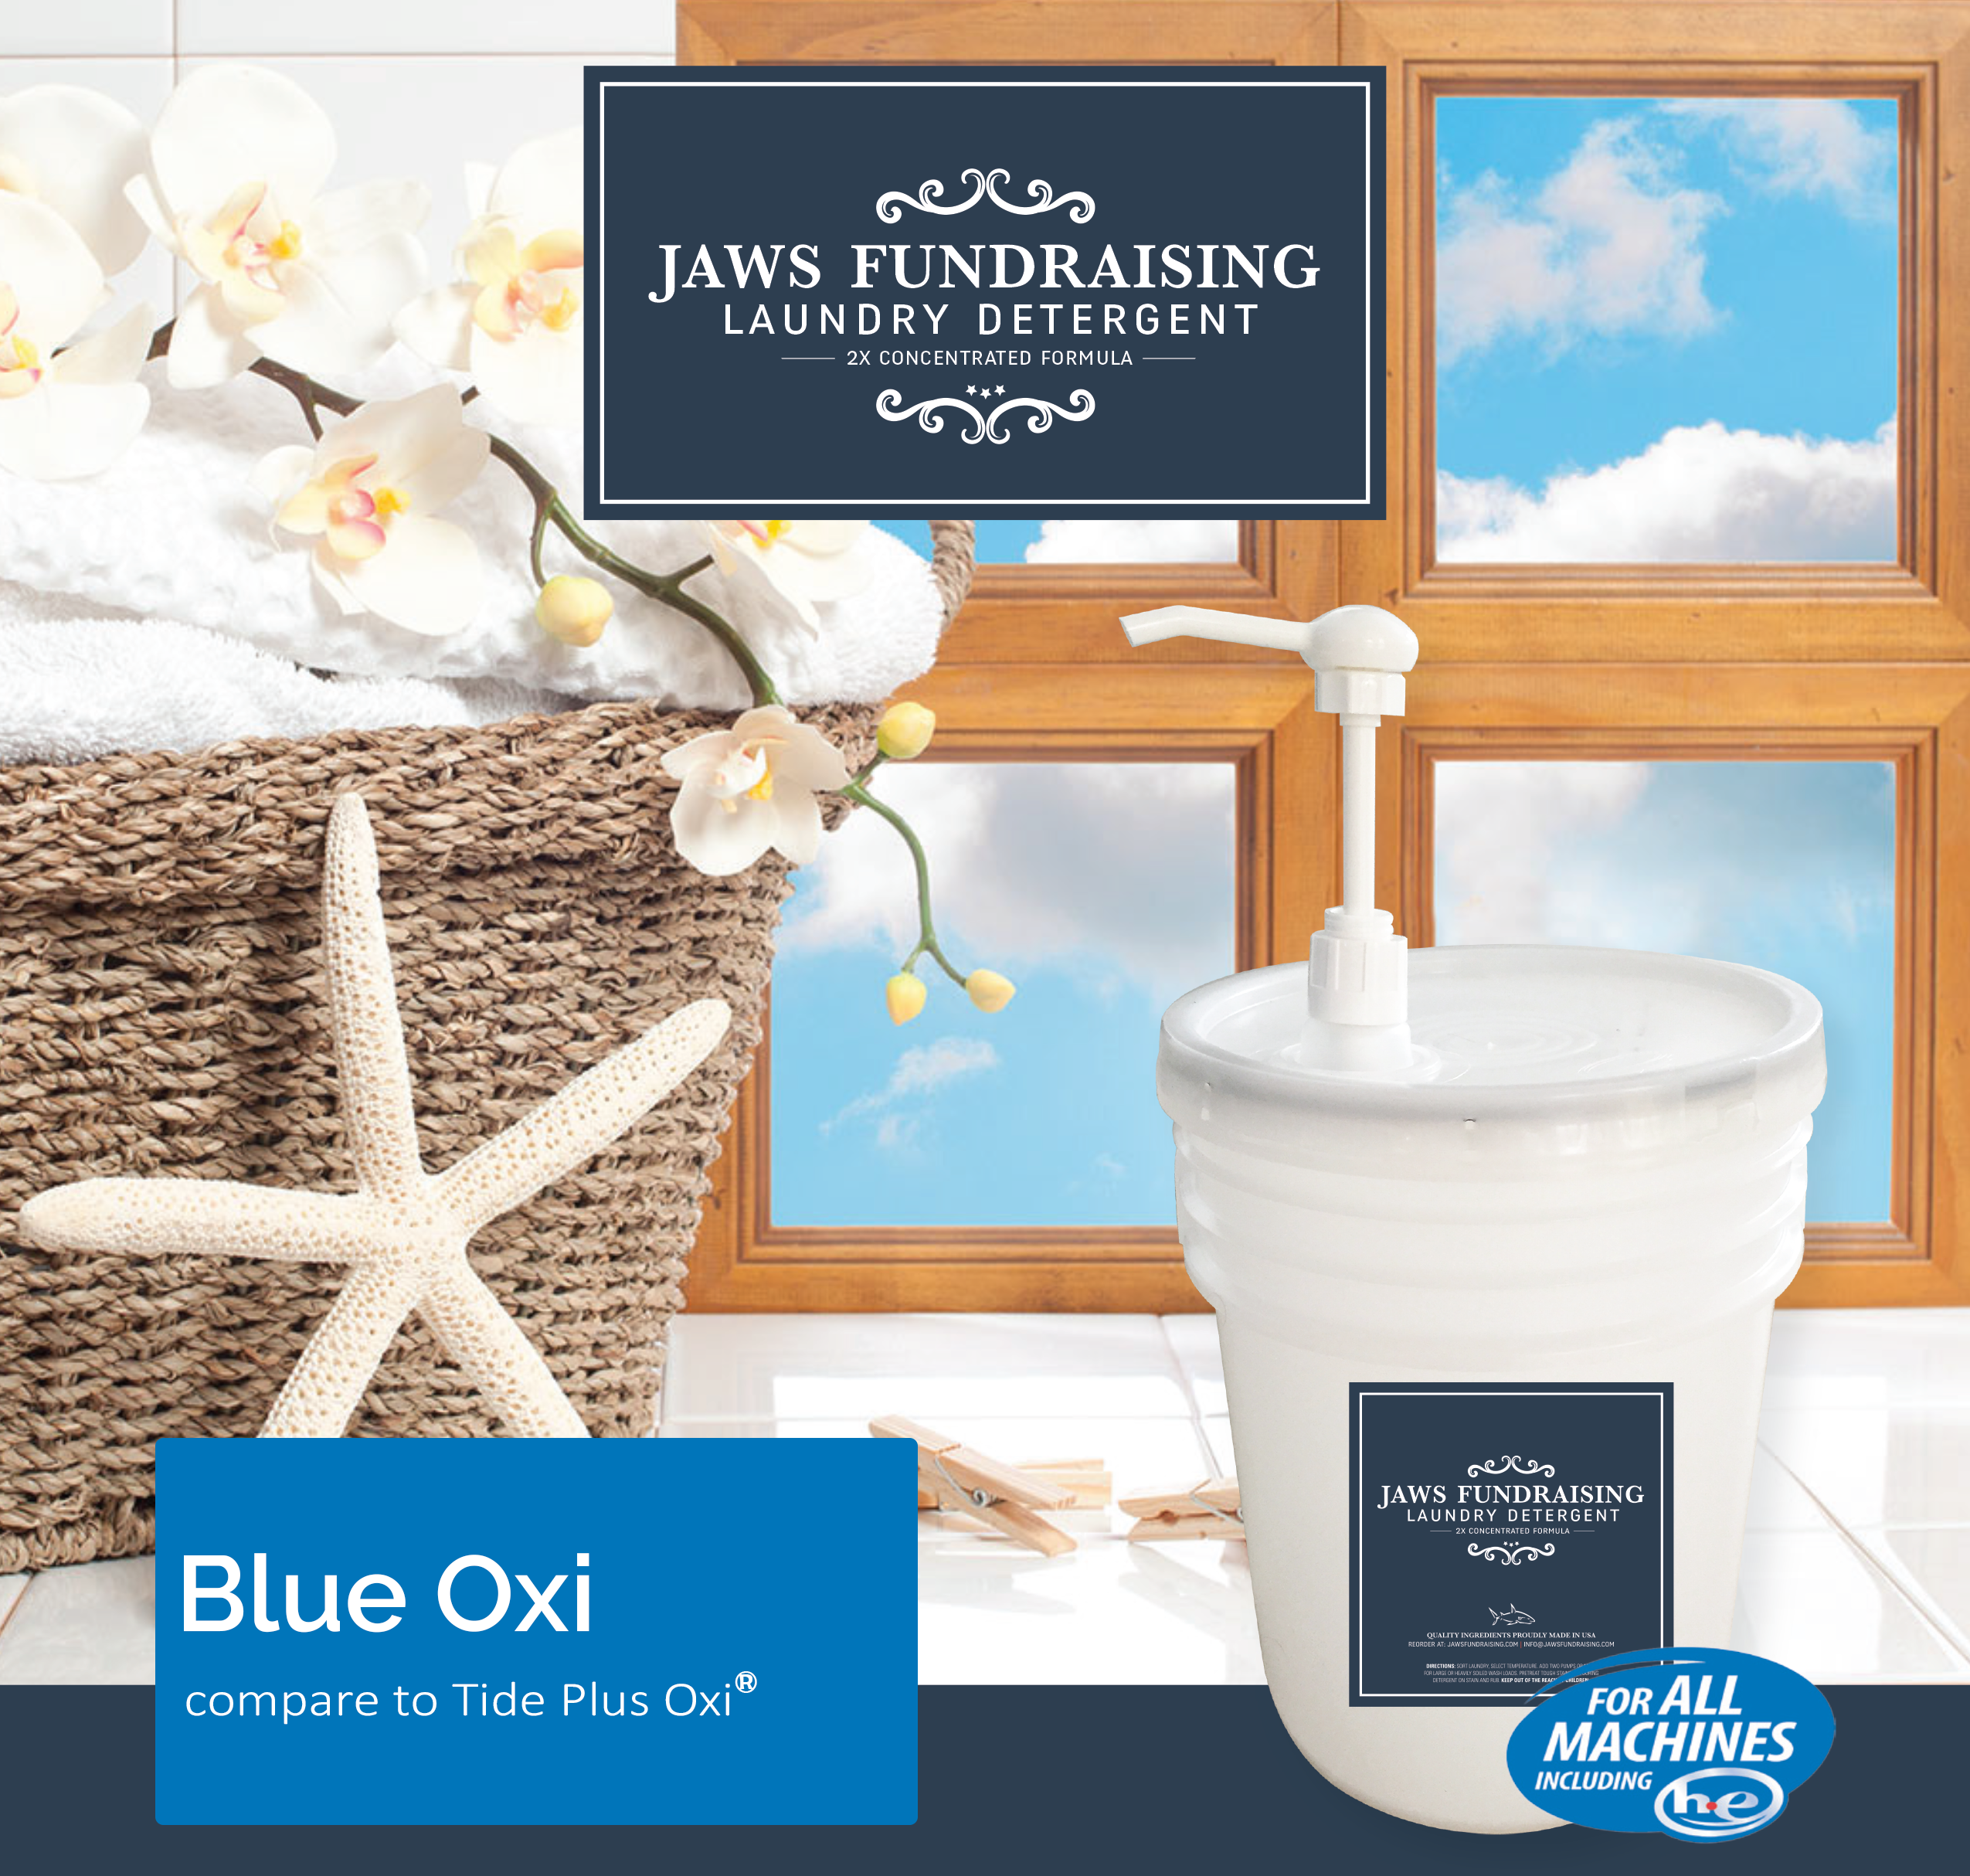 BRHS Band Booster Laundry Detergent/Blue Oxi Fundraiser - Bloodworth (Non Refundable)